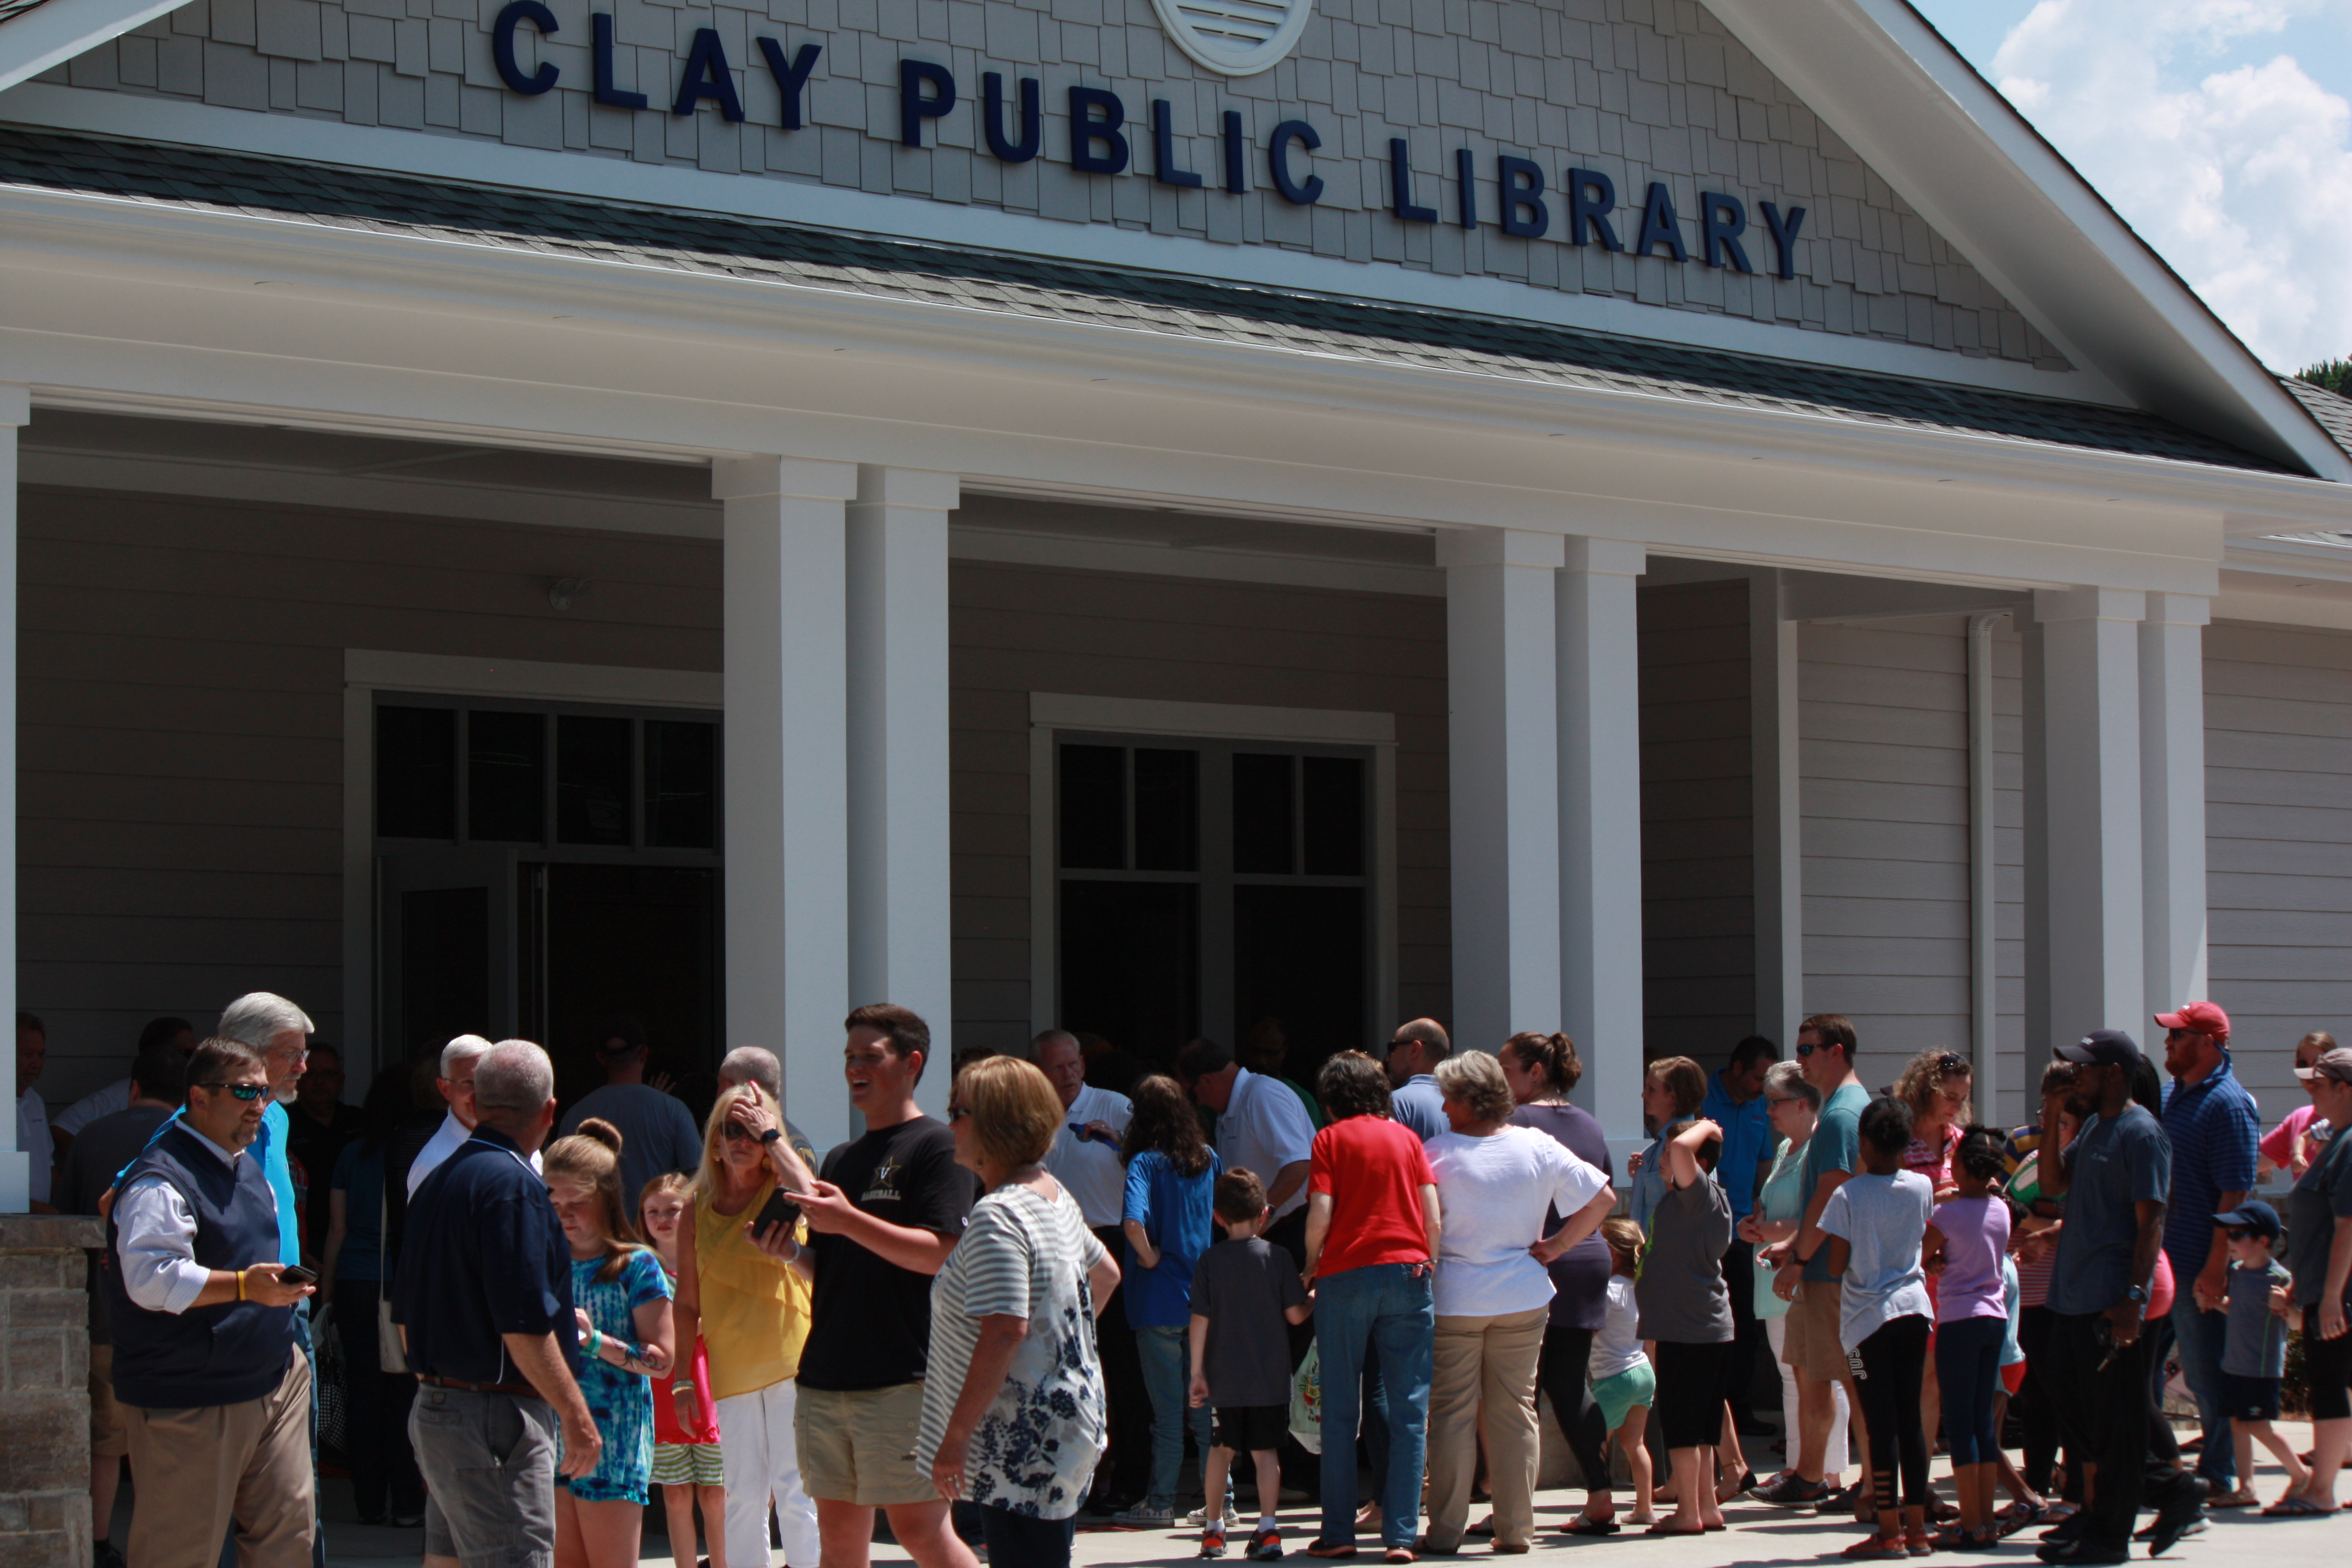 Clay Public Library celebrates opening with ribbon cutting